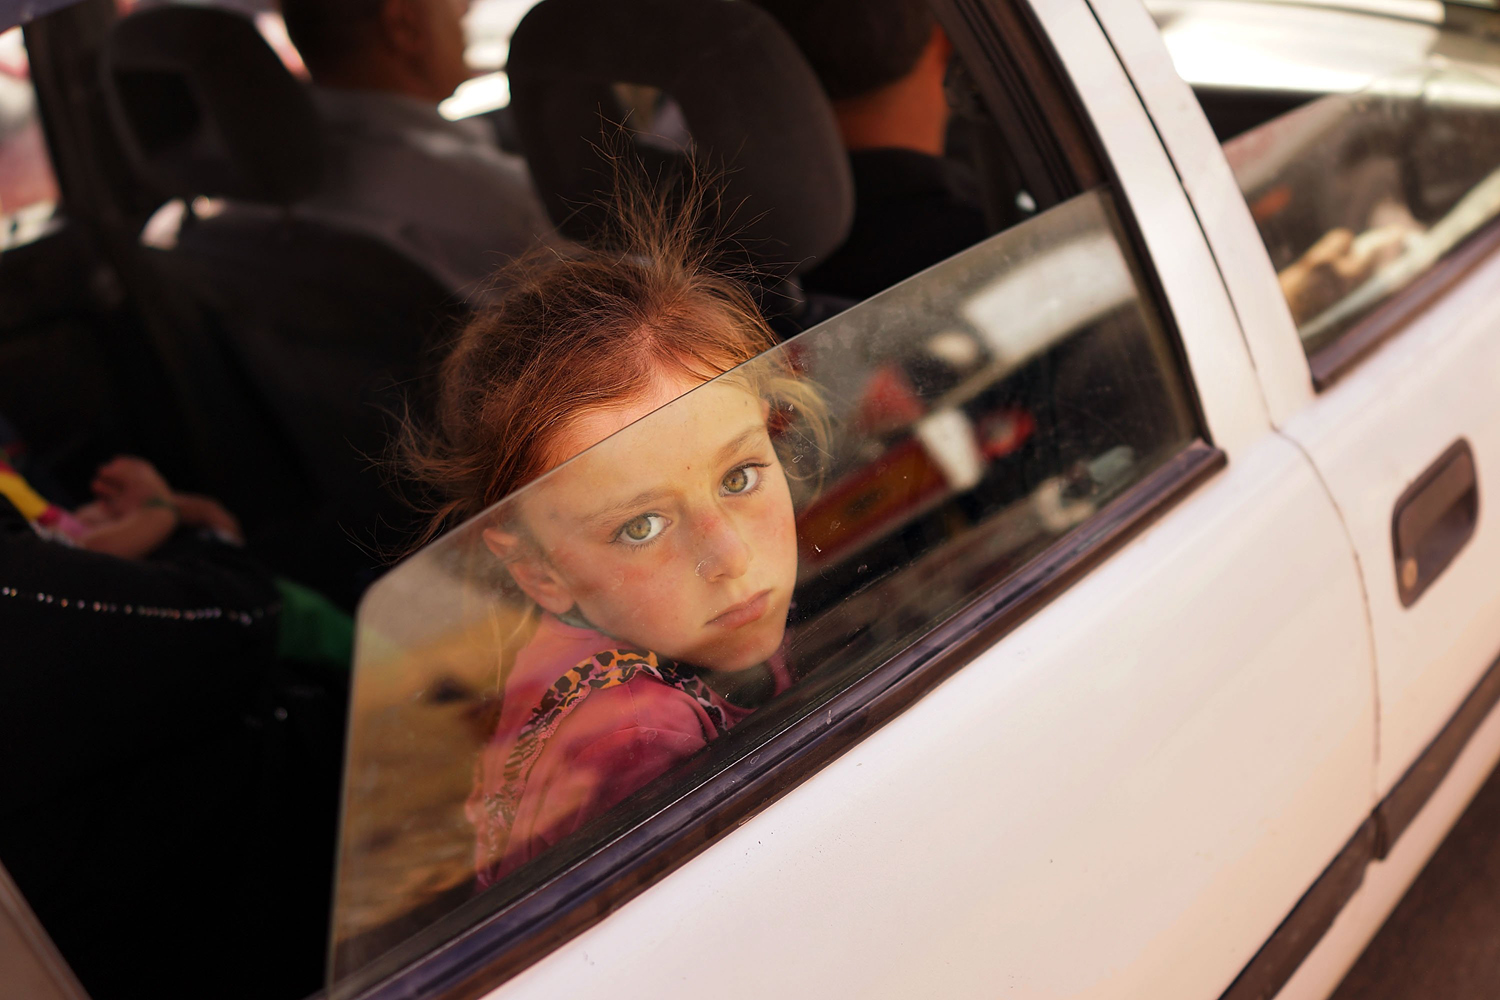 Jun. 26, 2014. An Iraqi child looks out of the window of her car as she waits to get into a temporary displacement camp for Iraqis caught-up in the fighting in and around the city of Mosul in Khazair, Iraq.